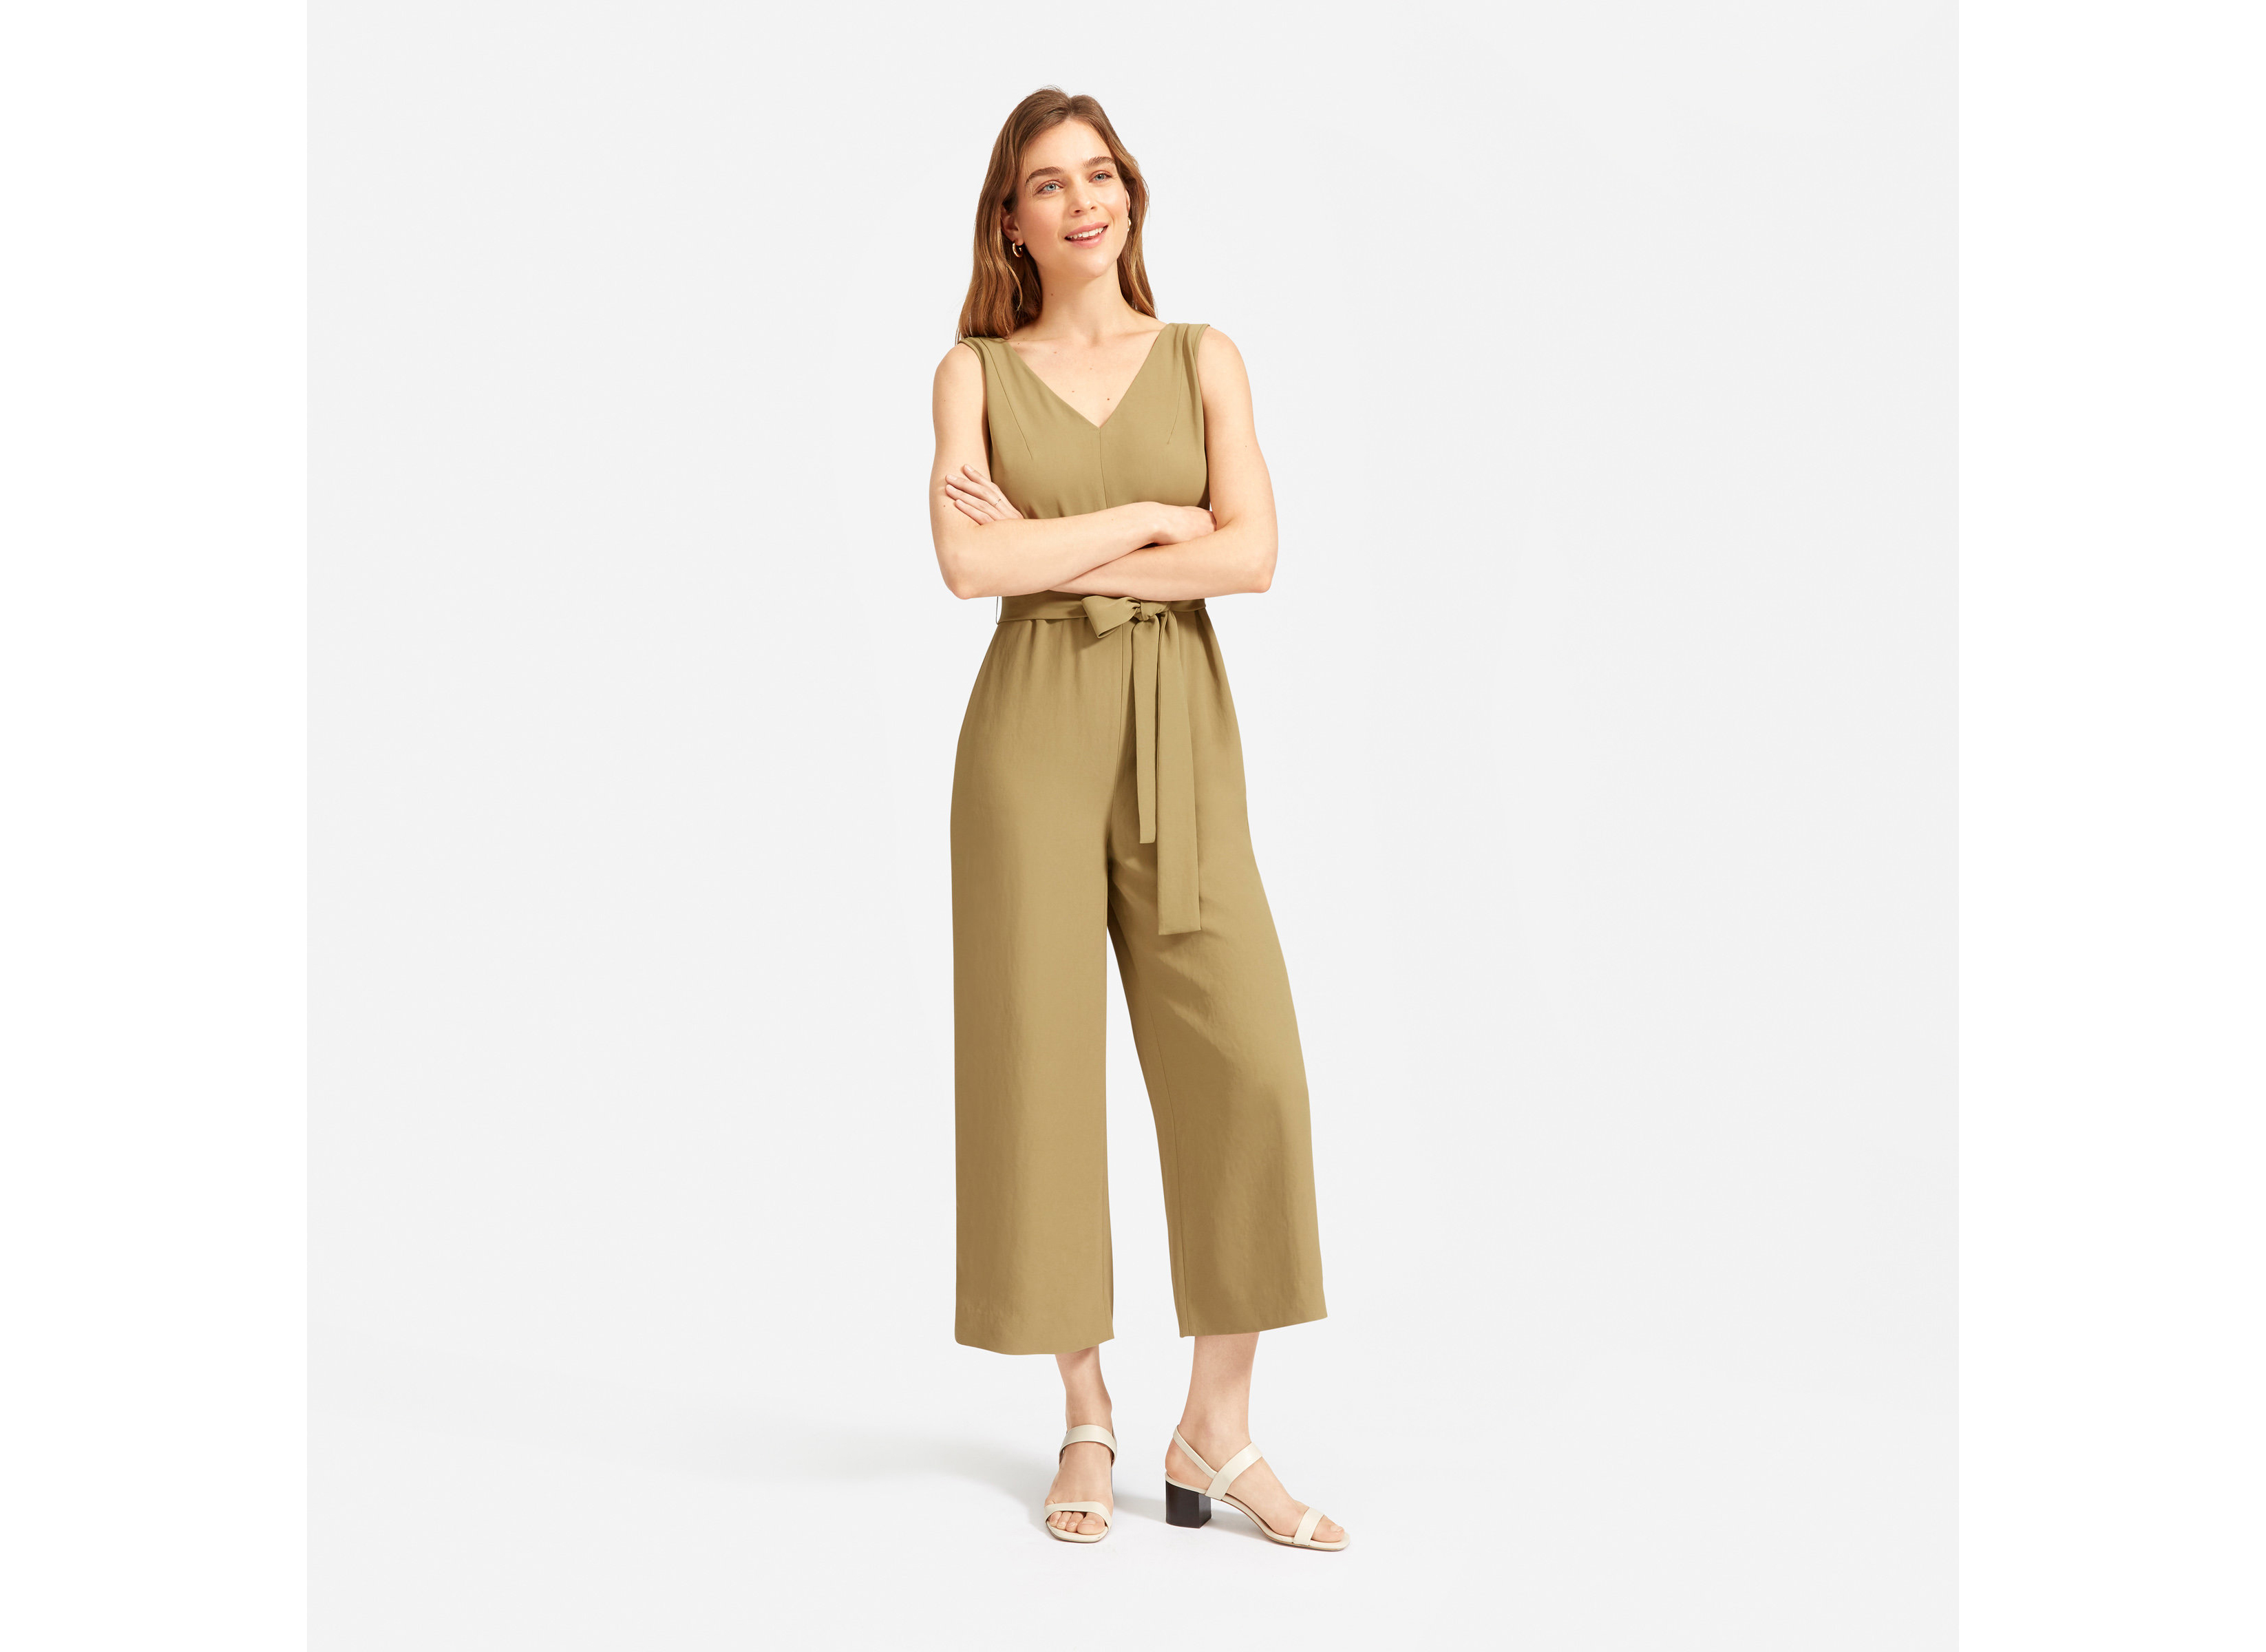 The Japanese GoWeave Essential Jumpsuit from Everlane